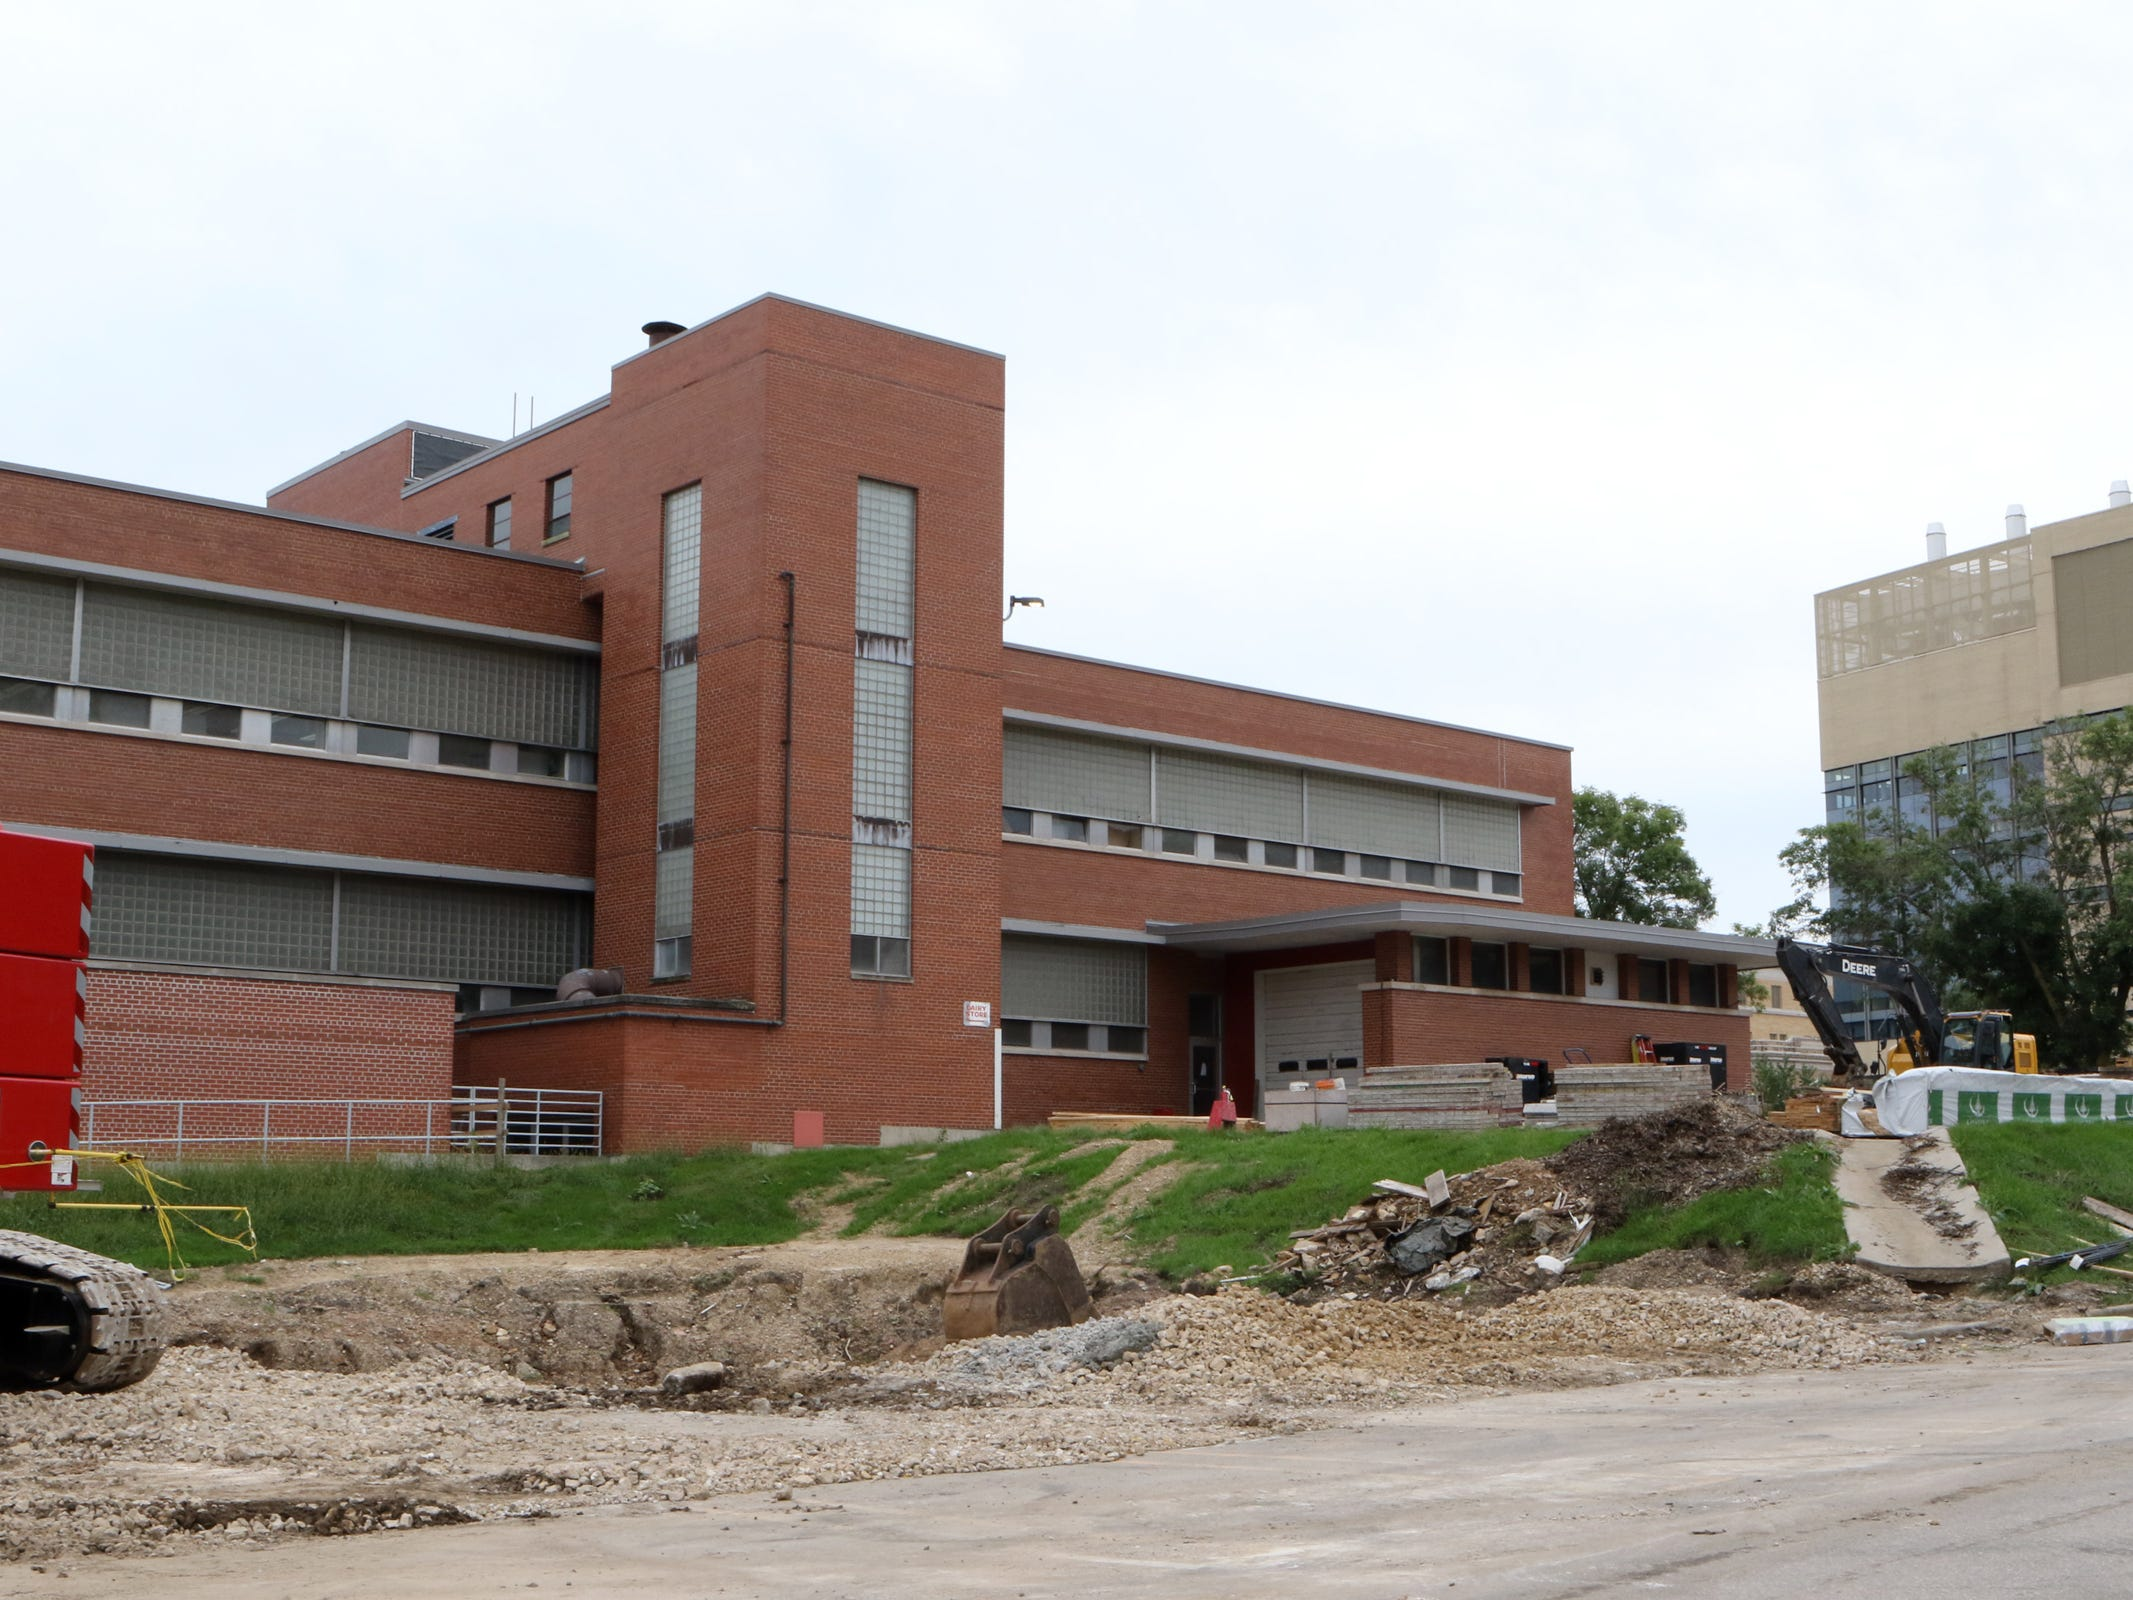 A hole remains where the former UW-Madison Science House stood as work has begun on a $47 million construction and renovation project for UW–Madison's Babcock Hall Dairy Plant and Center for Dairy Research. The project will be completed in three phases with completion anticipated later in 2020.